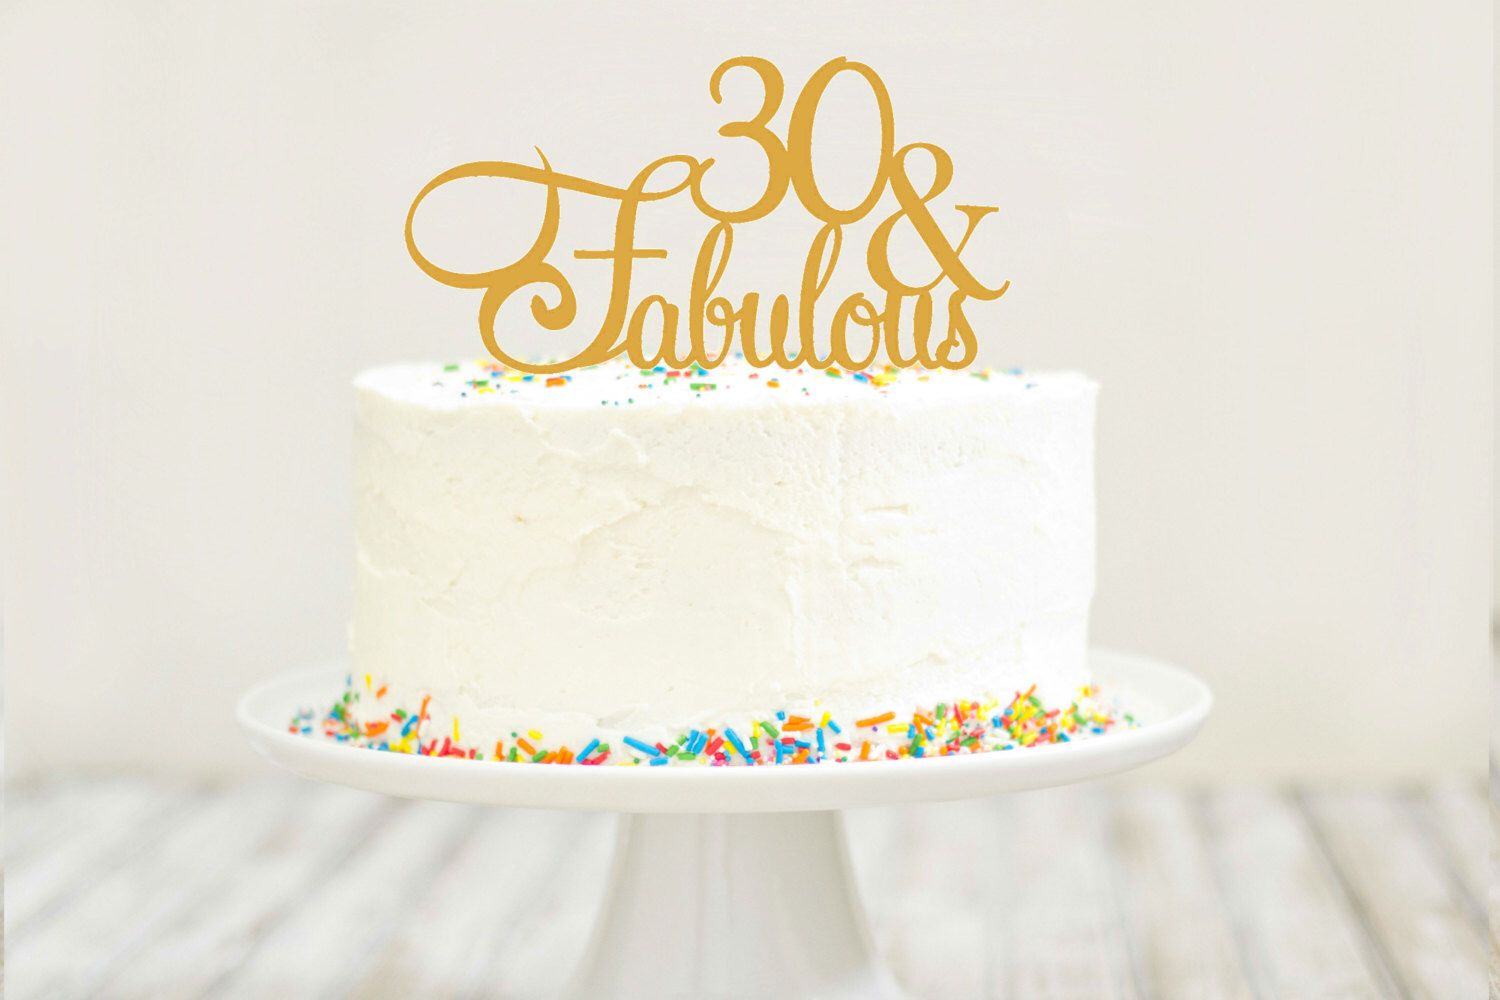 30 and Fabulous Birthday Cake Topper in any color 30th birthday